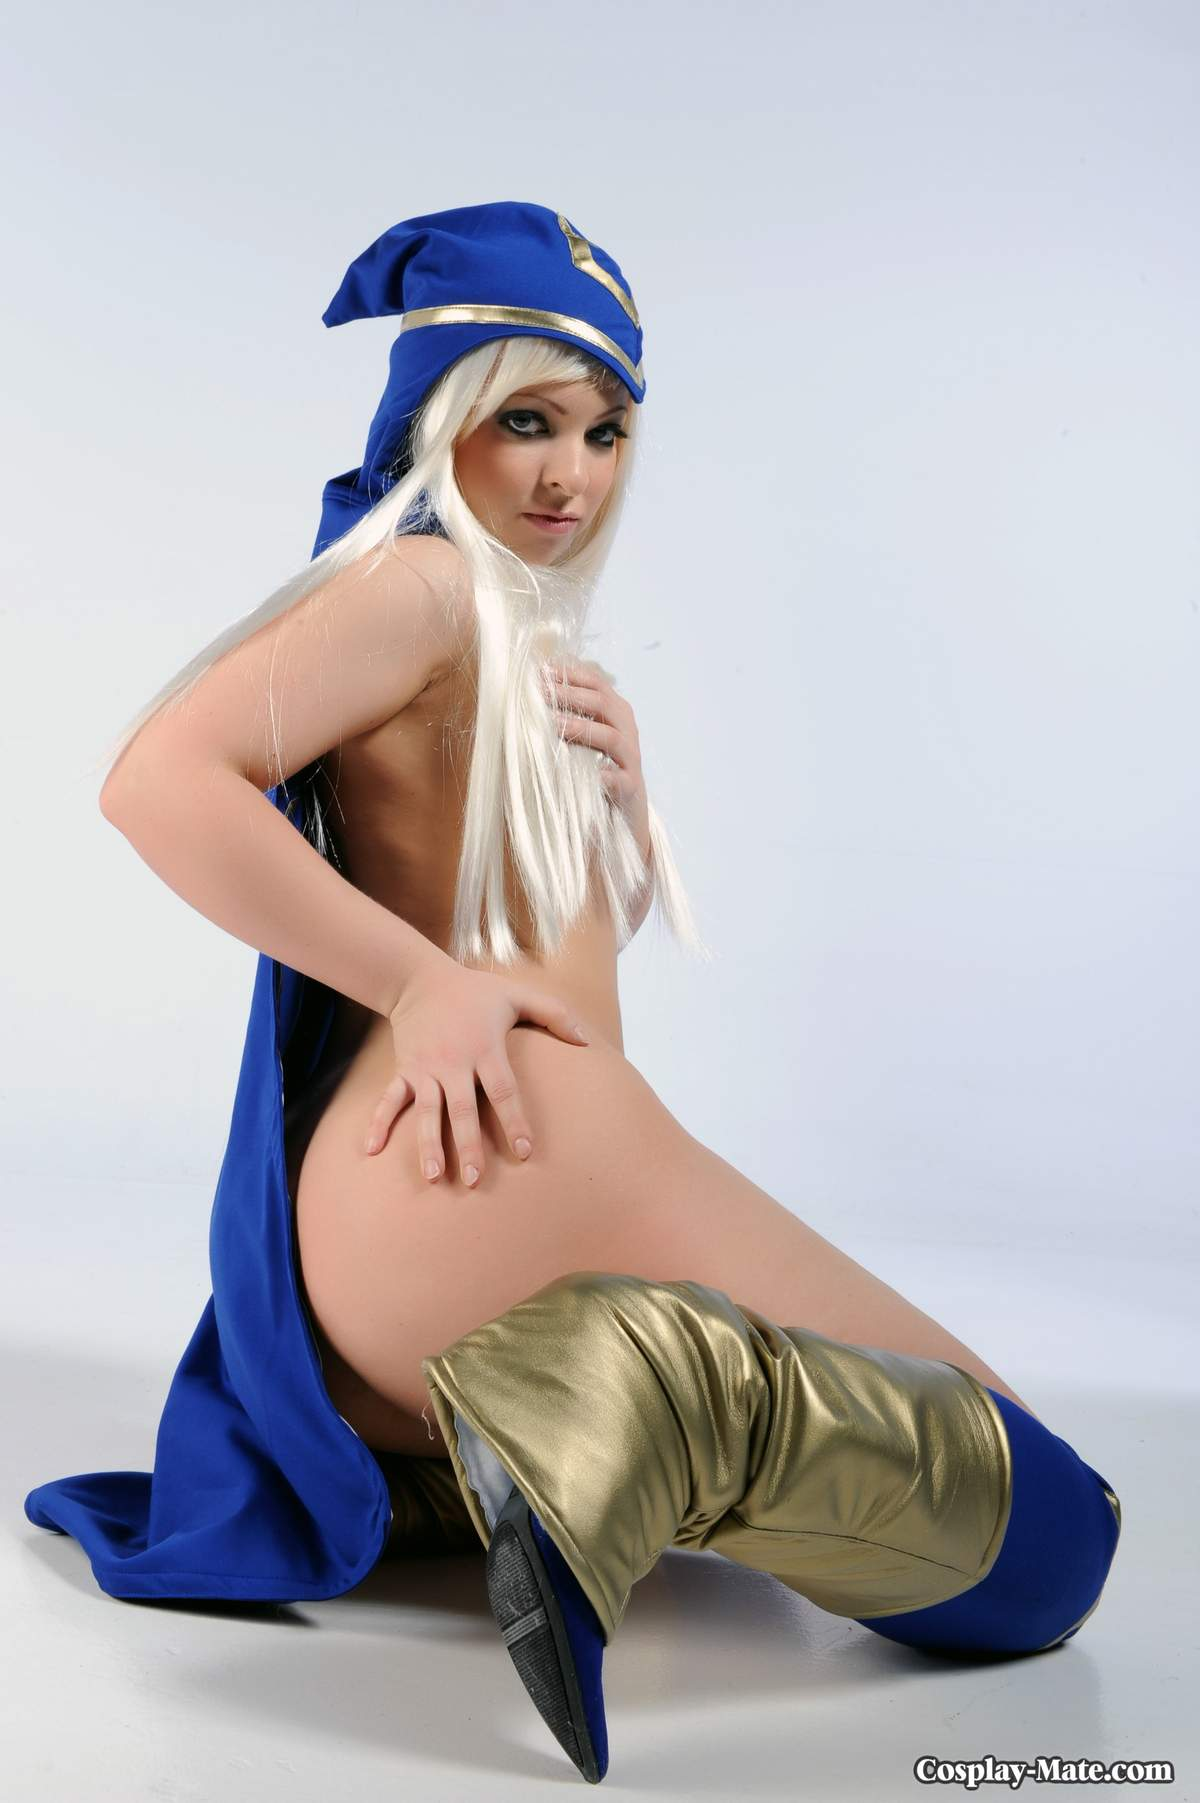 Adult videos Redheads in the bible